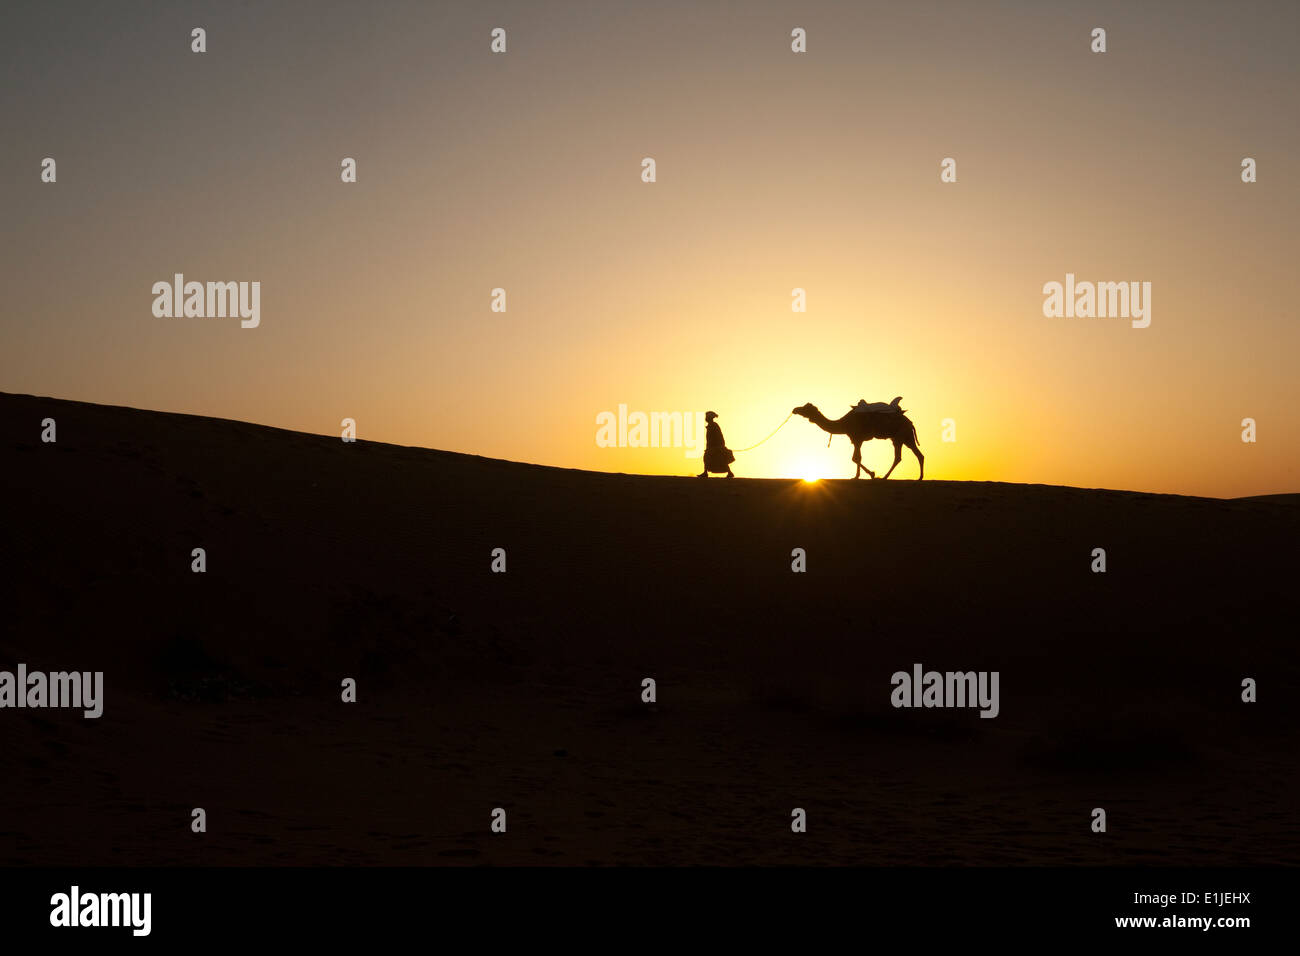 Man walking with camels at sunset in the Thar Desert, Jaiselmer, India - Stock Image